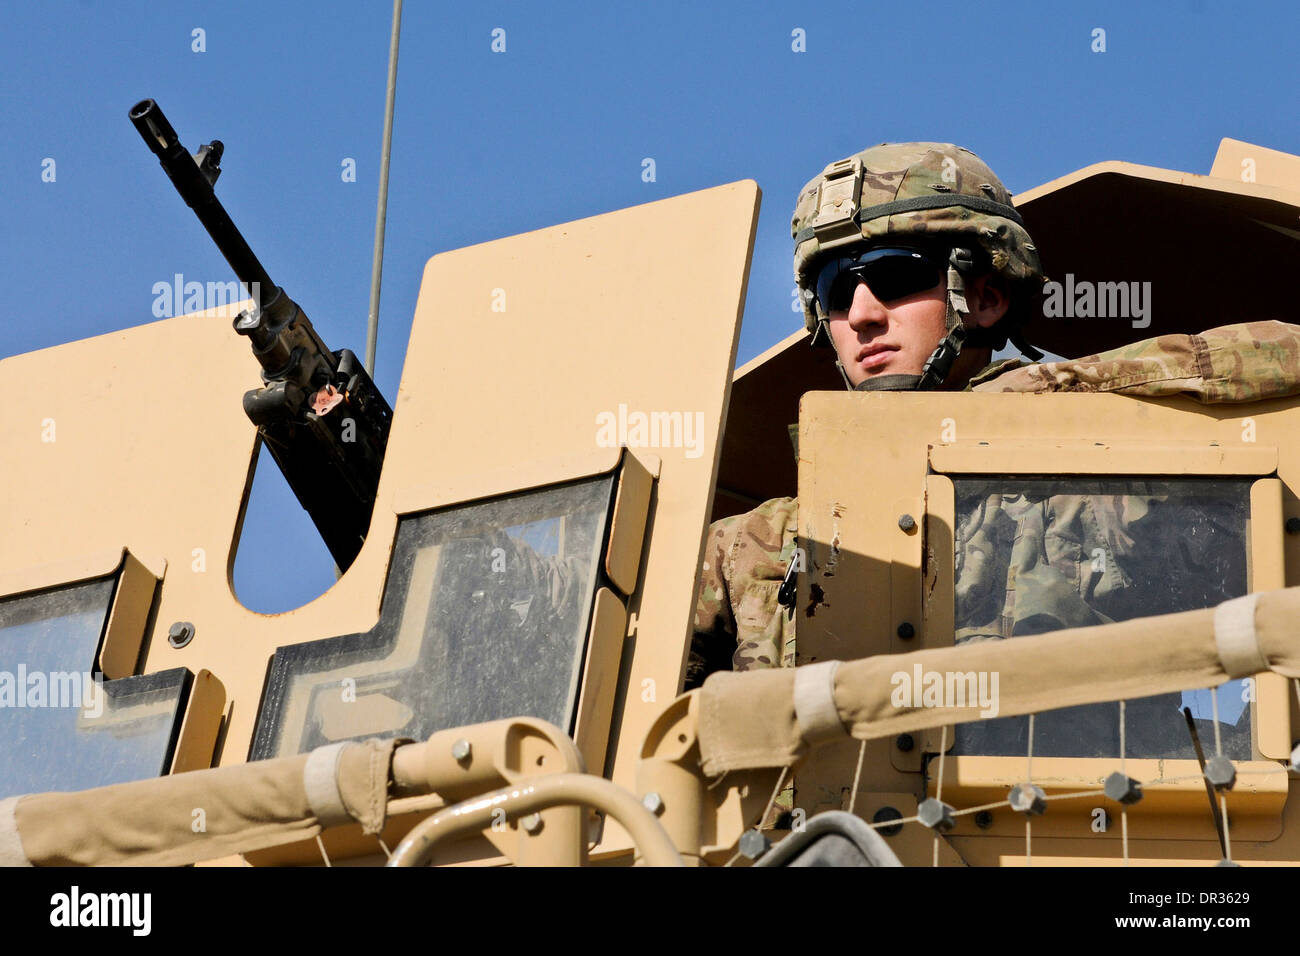 U.S. Army soldier - Stock Image